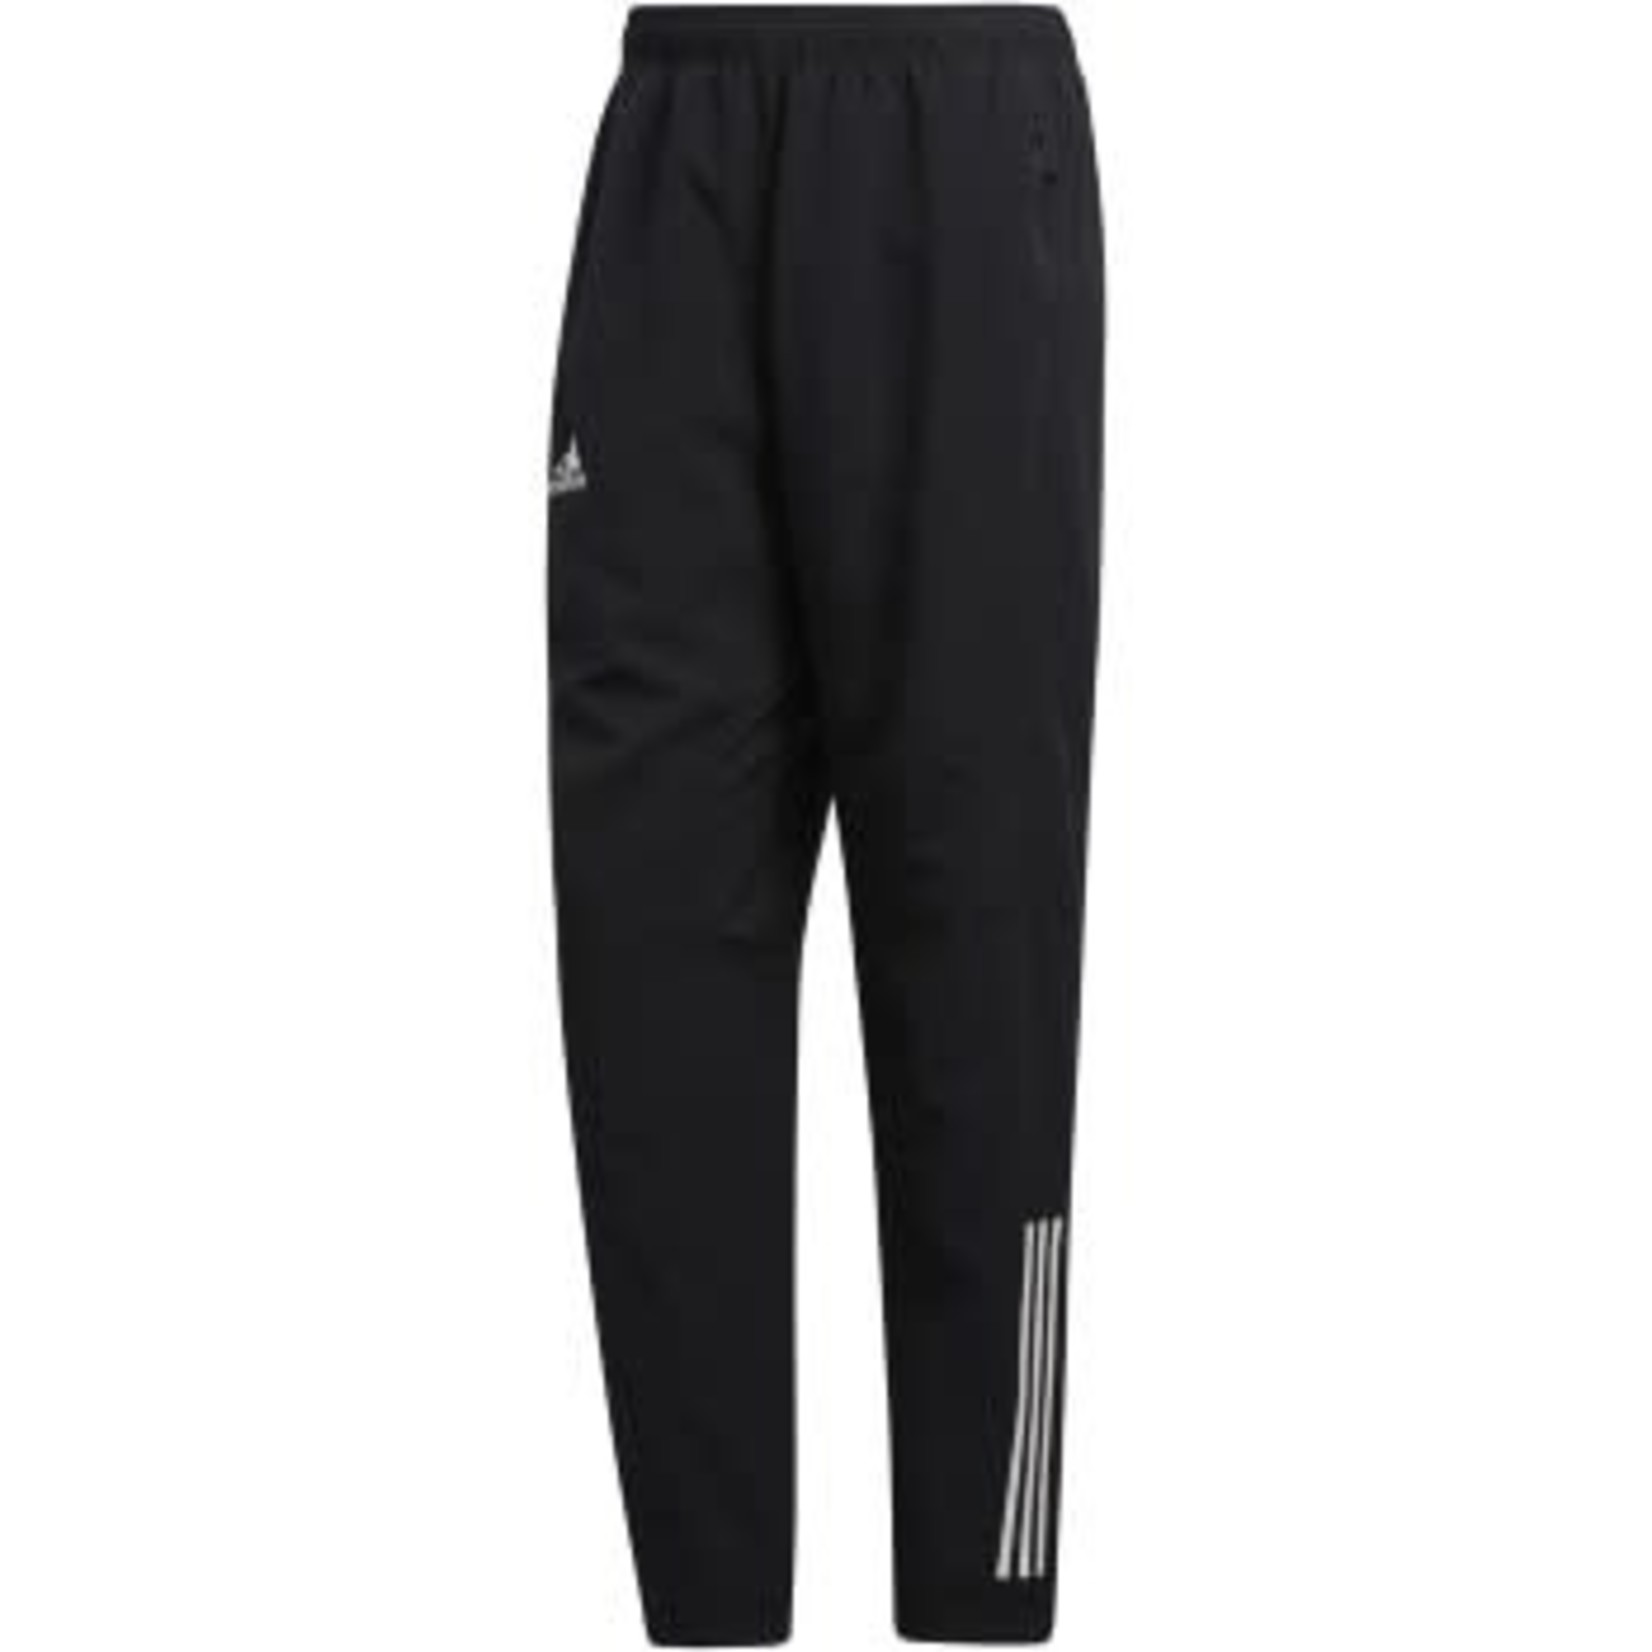 ADIDAS Guelph Gryphons Adidas Rink Suit Pant - Youth